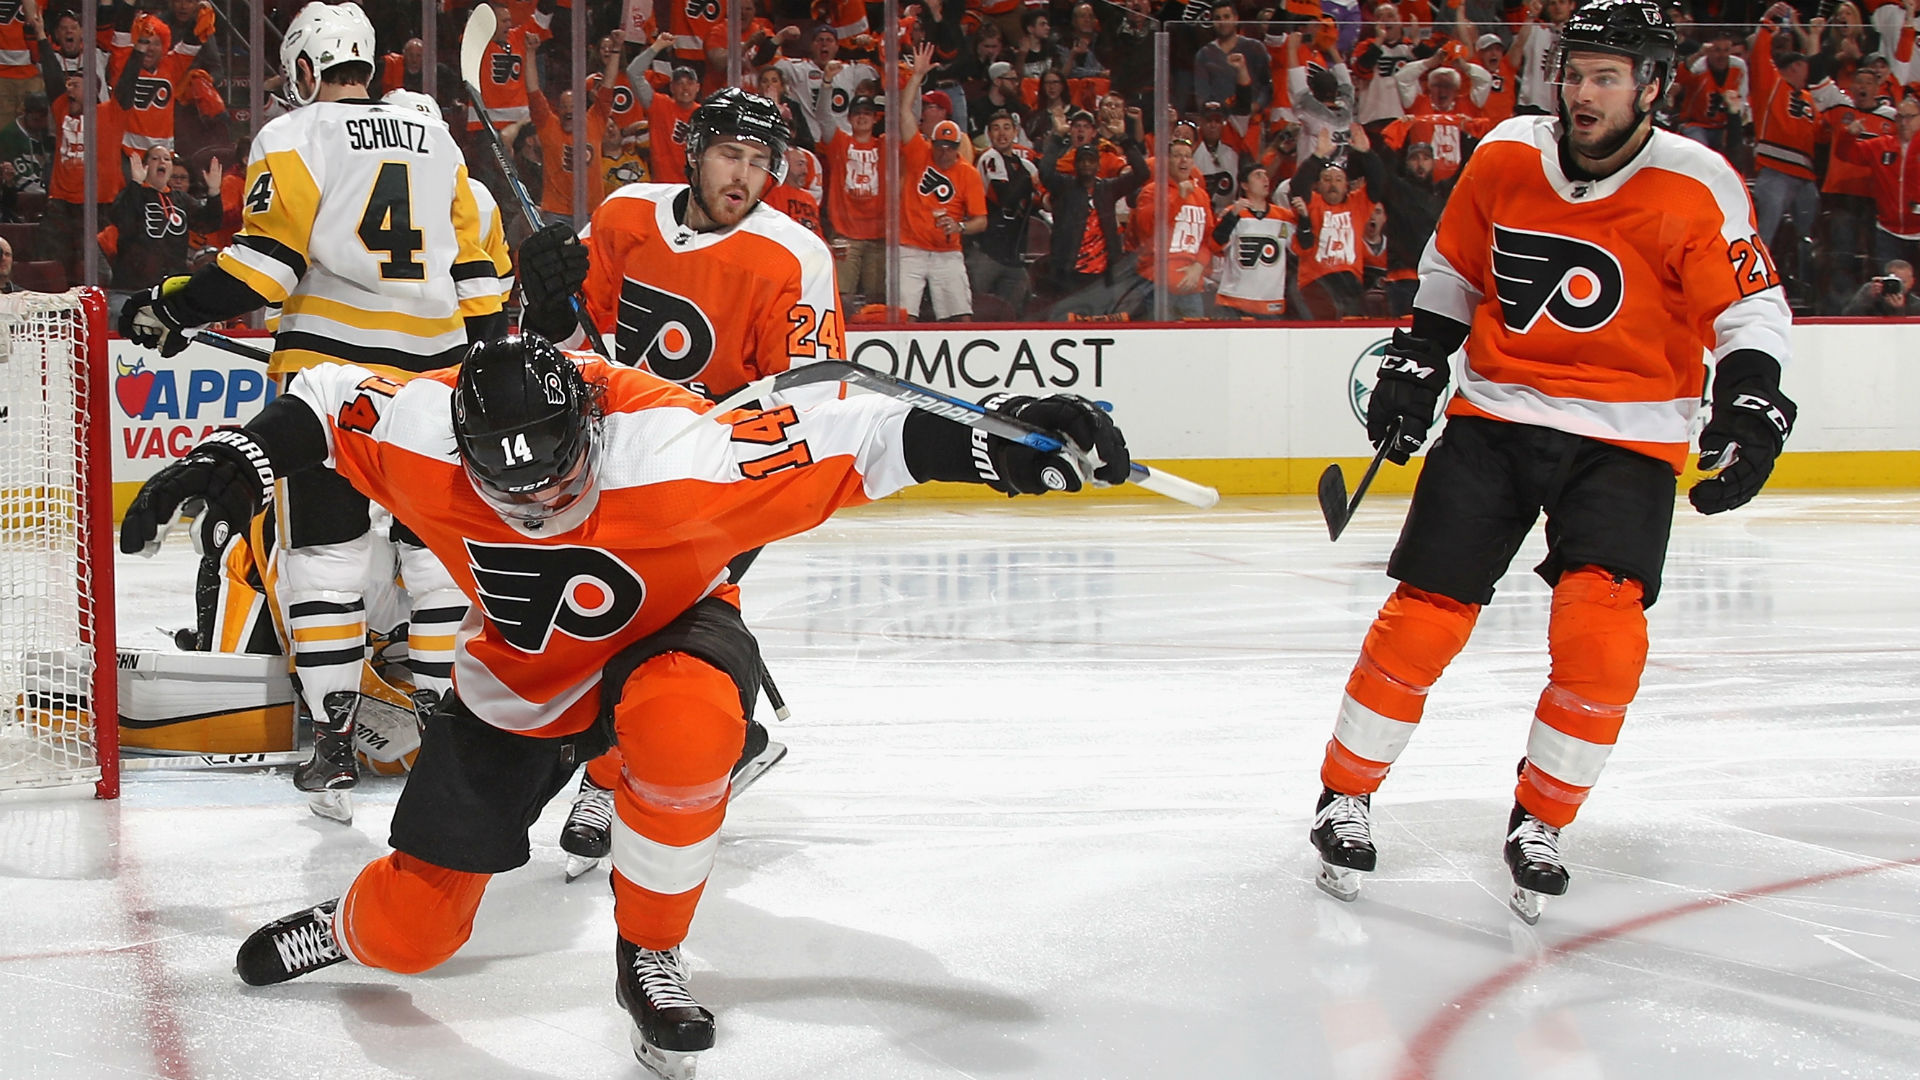 Flyers beat Penguins, force Game 6